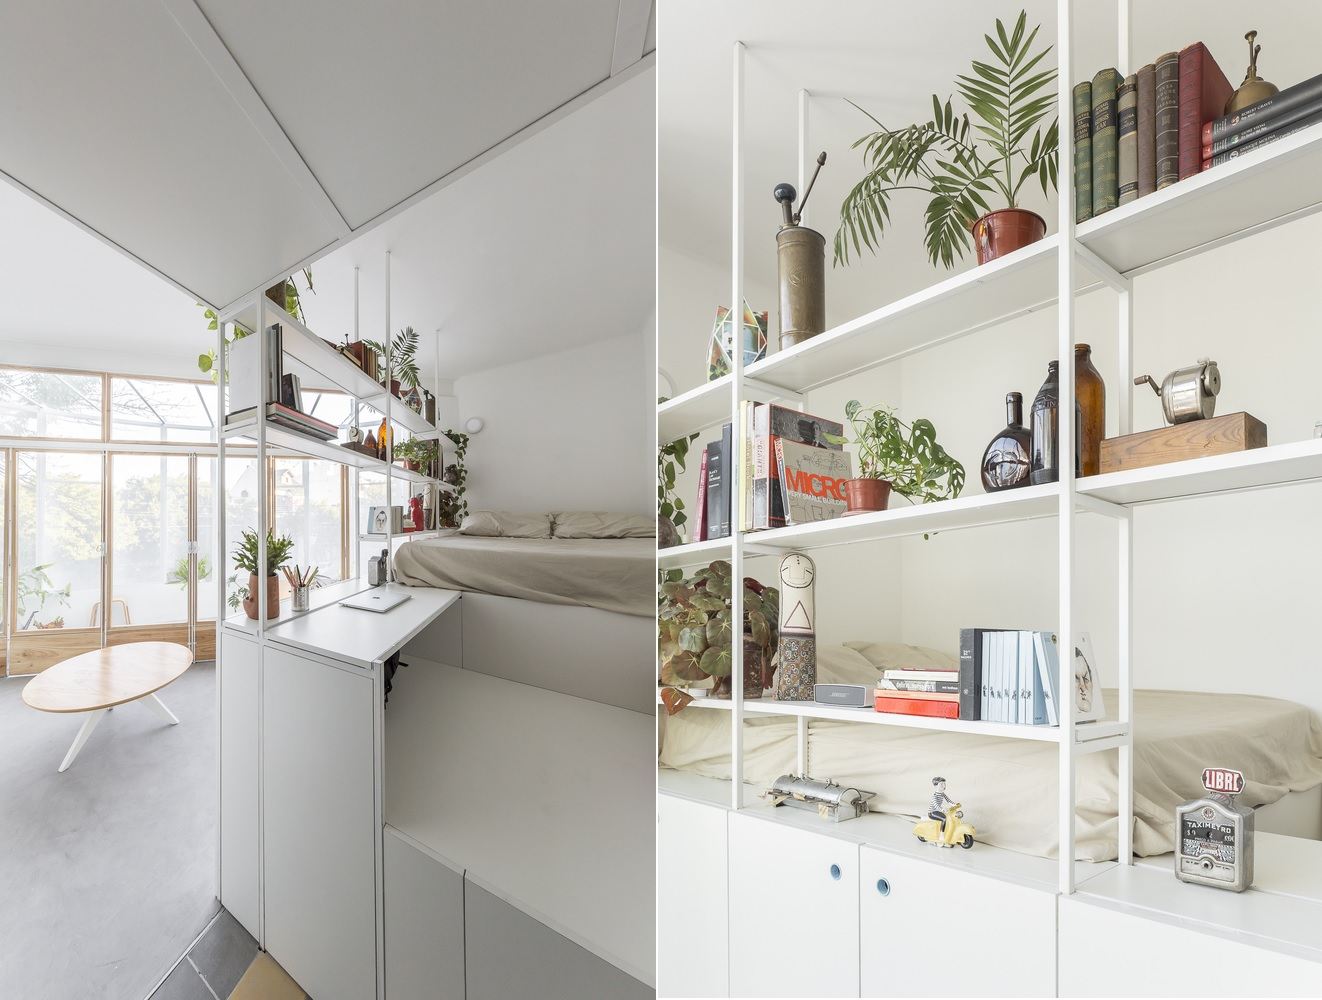 The open shelves act as space dividers and provide storage without closing off the two adjacent areas